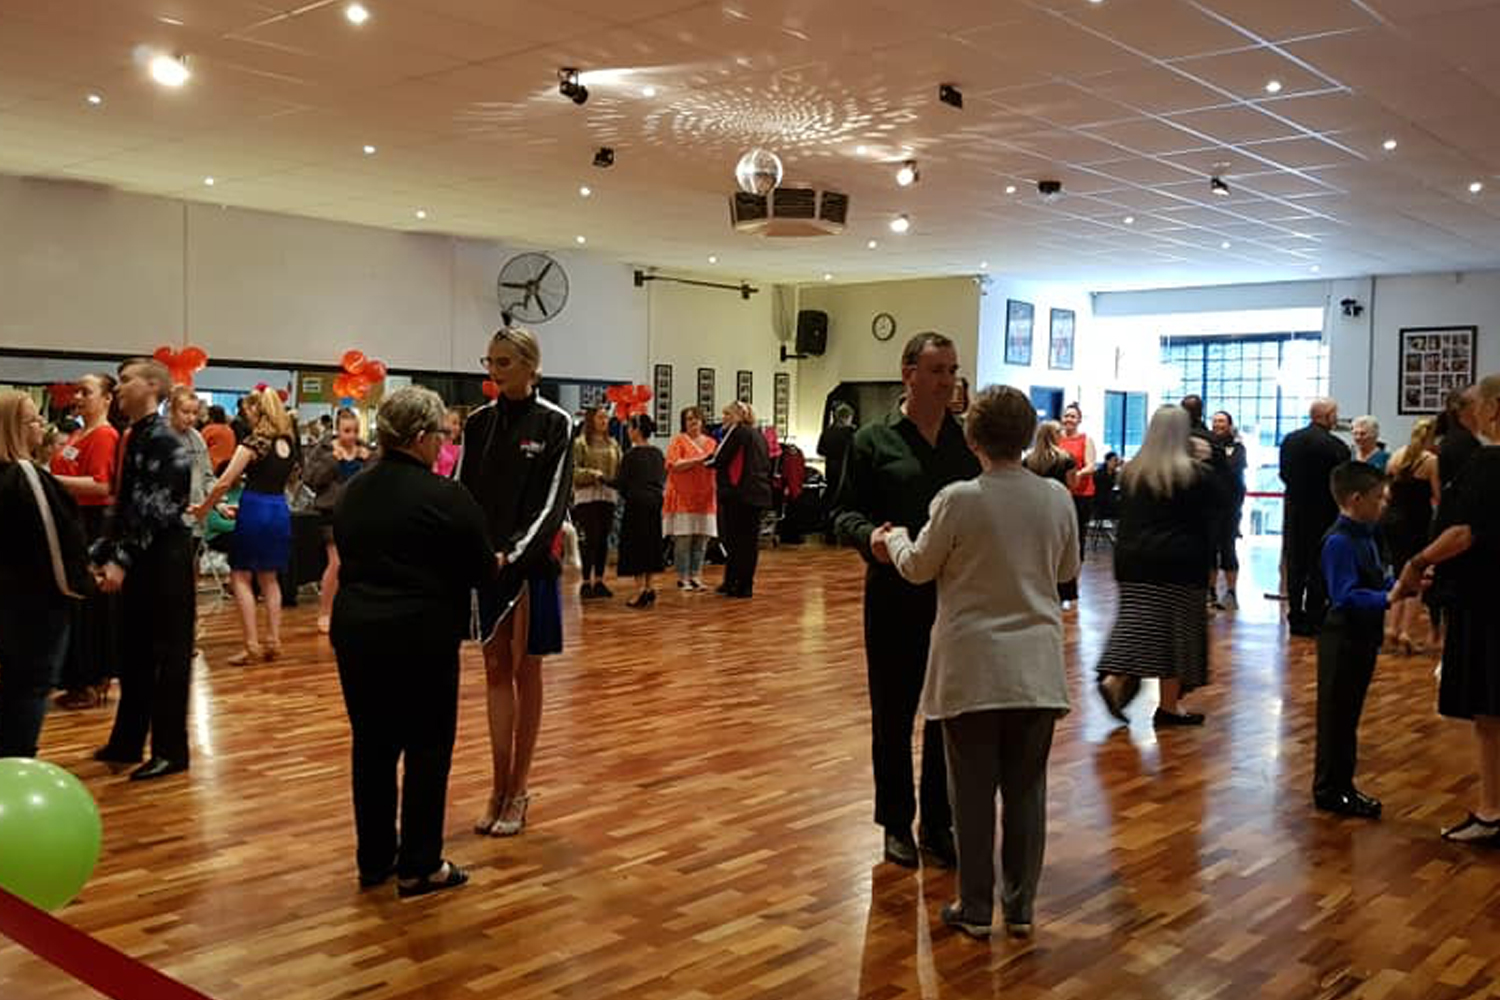 Adult Learn to Dance Ballroom, New Vogue, Latin American and Street Latin